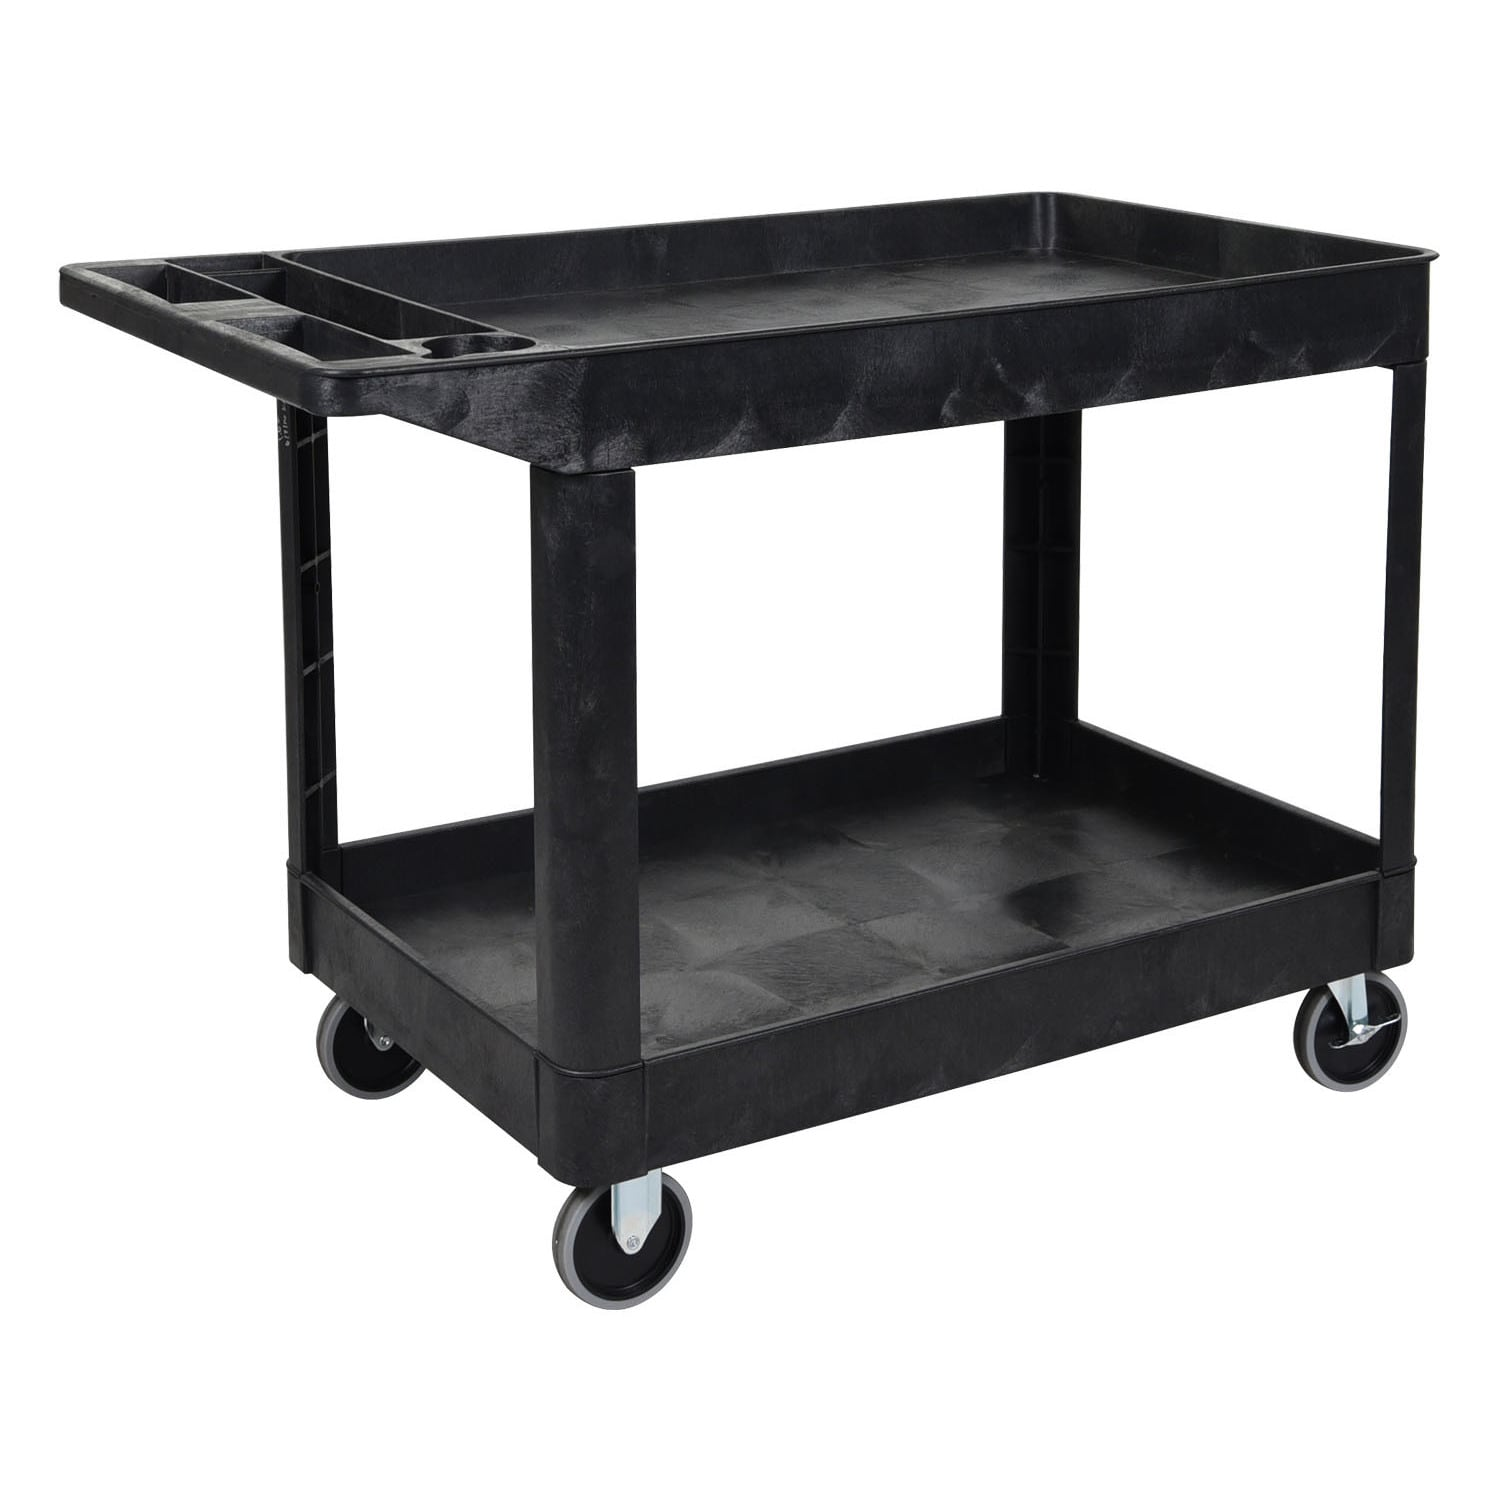 Offex  OF-XLC11-B 2 Shelves Multipurpose Black Utility Storage Cart